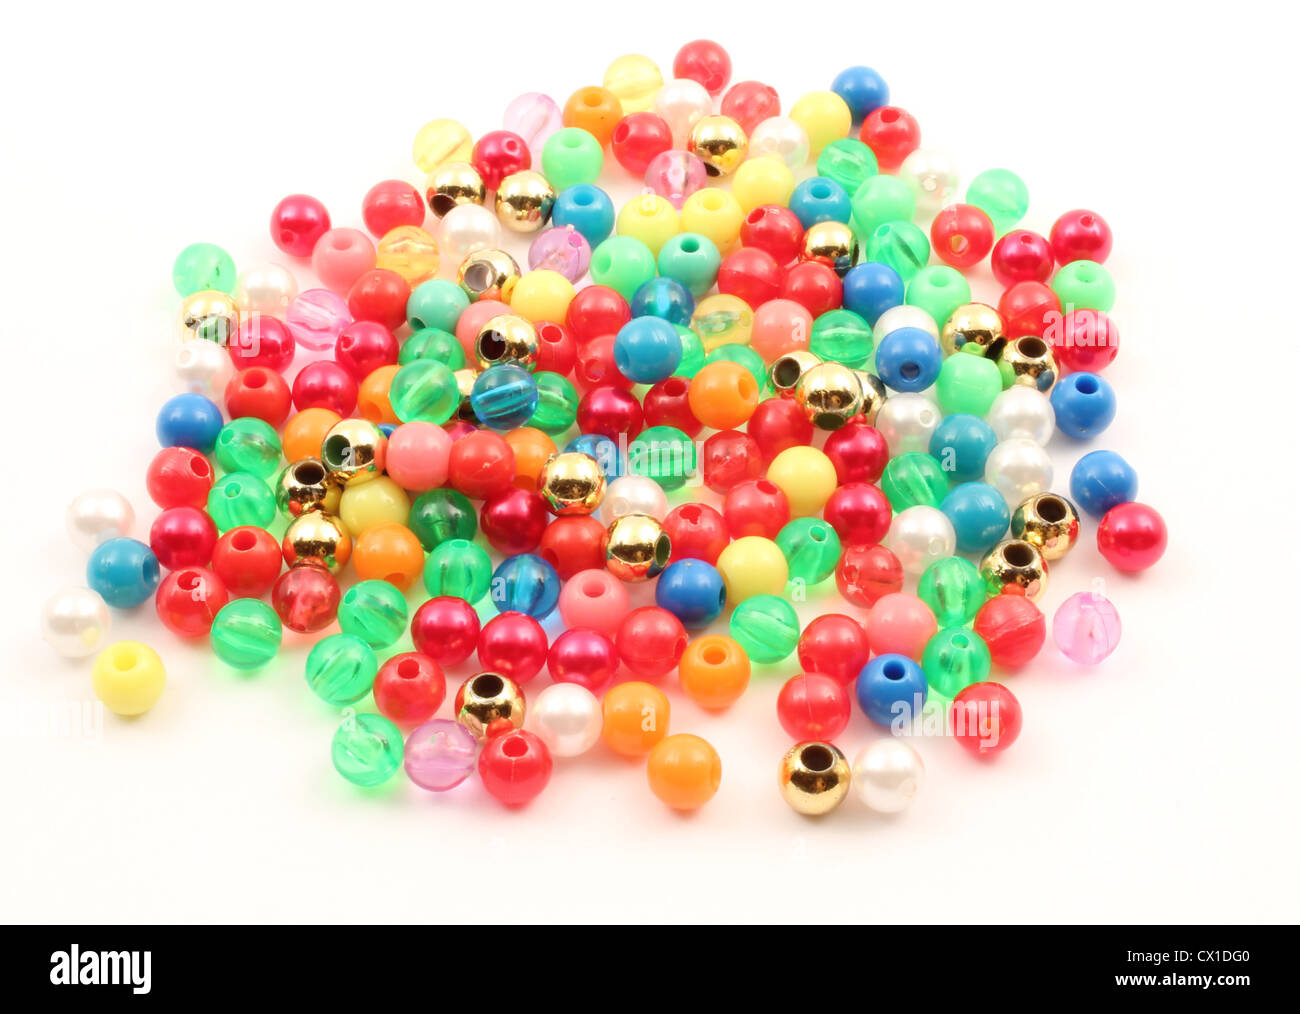 Spheres of plastic over a white background. Stock Photo